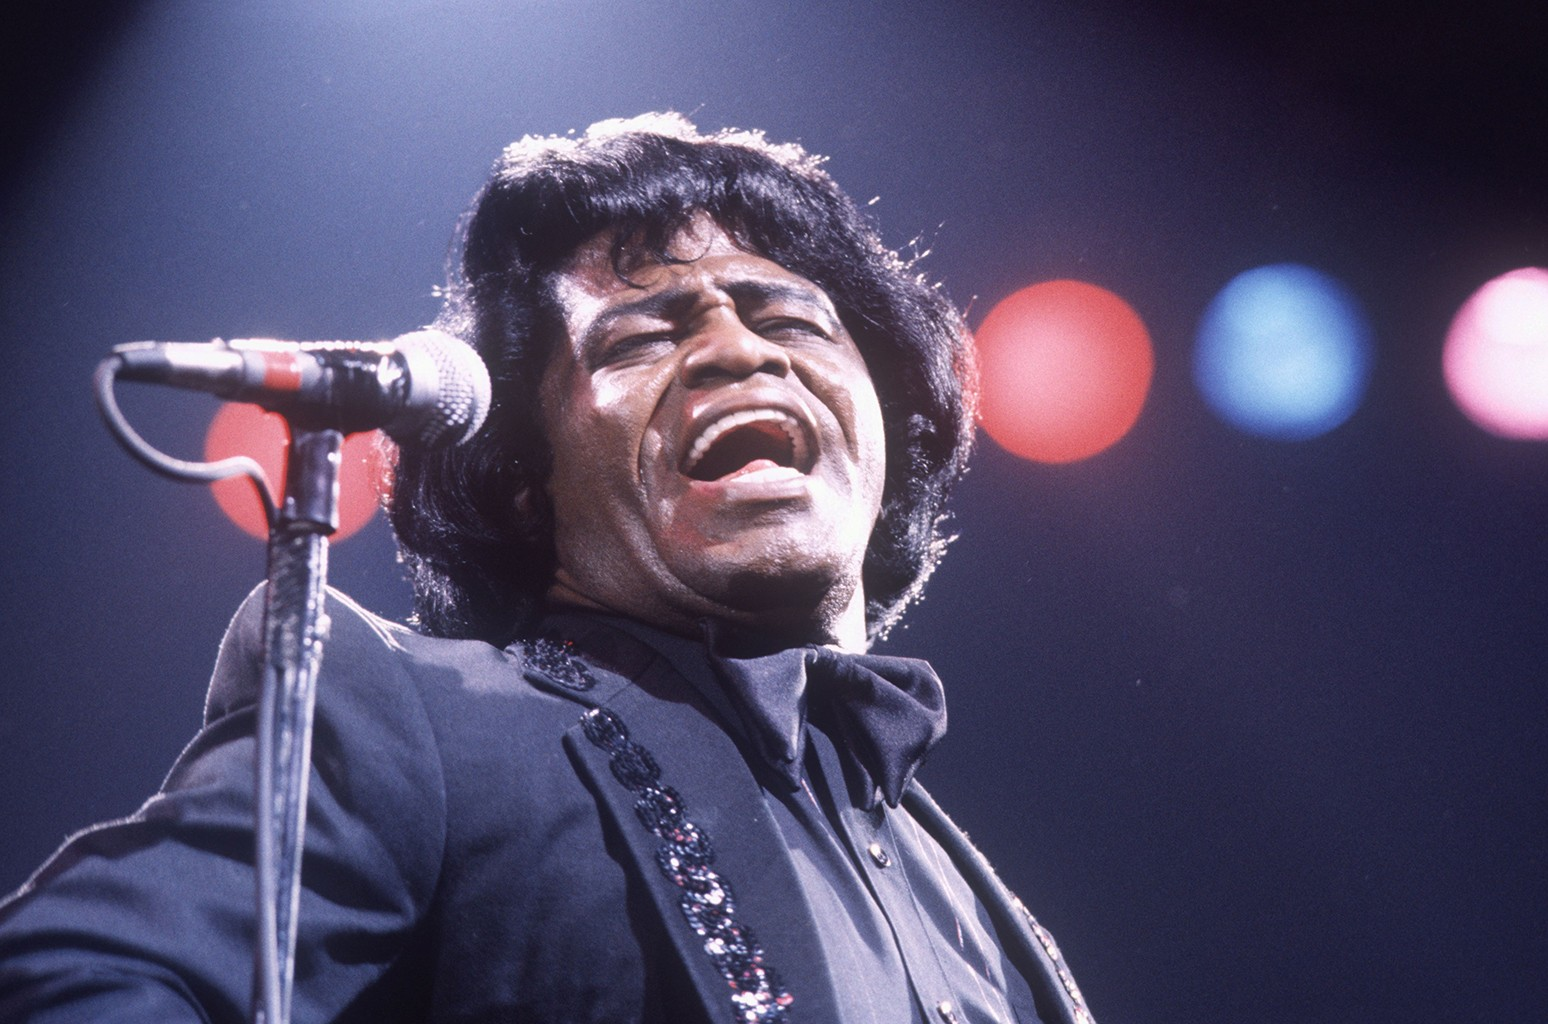 James Brown performs at Wembley Arena in London in 1986.